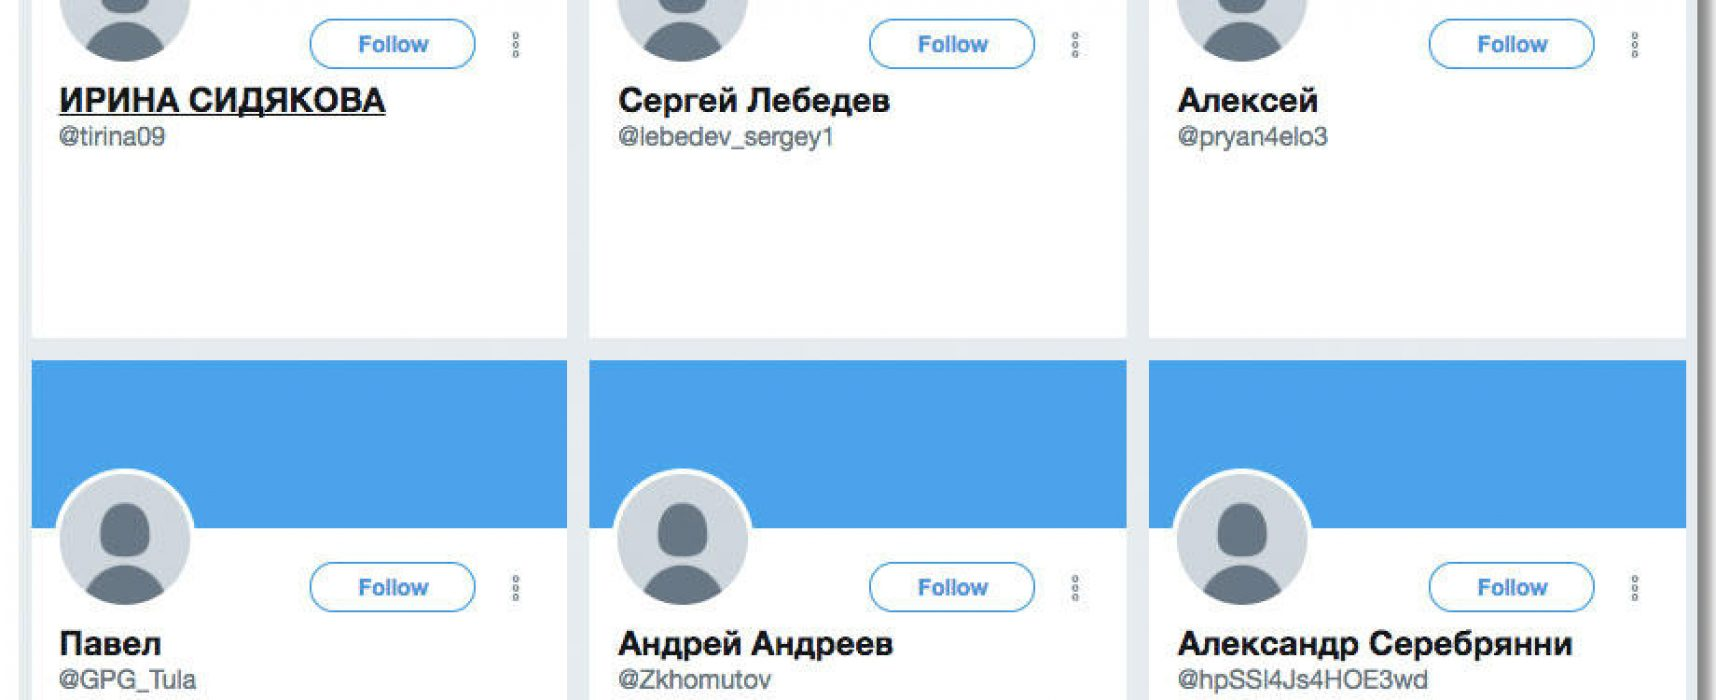 Russian network TV show reportedly uses Twitter bots to fake fawning viewer feedback